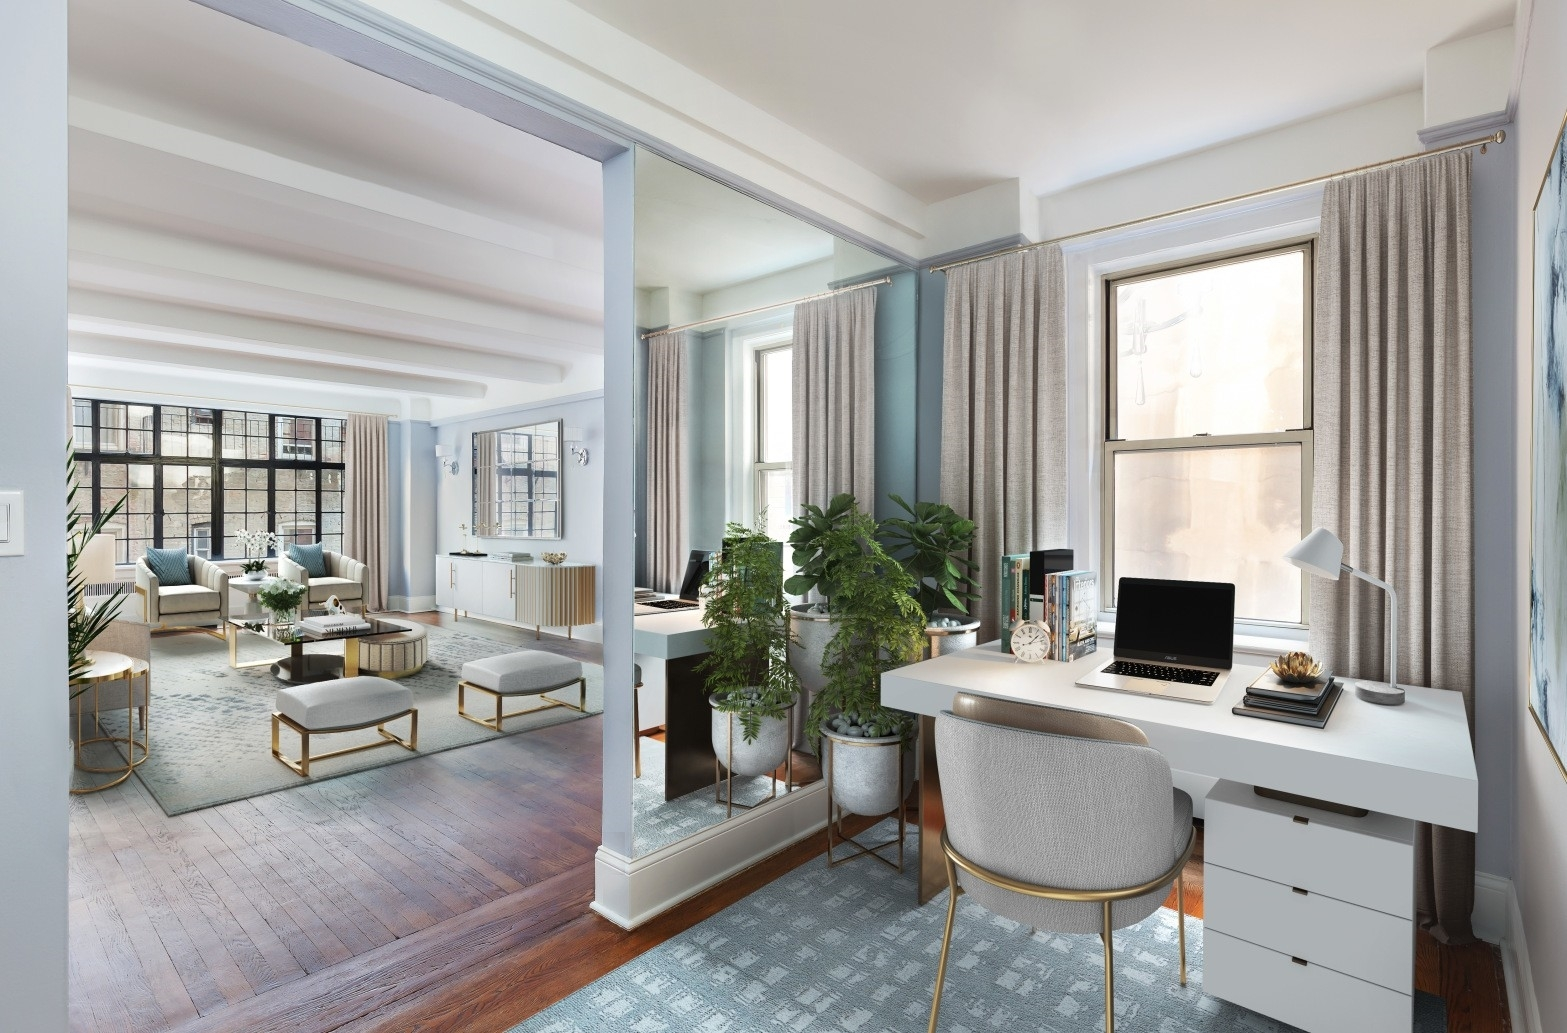 2. Co-op Properties for Sale at GRAMERCY OWNERS LTD, 44 Gramercy Park North, 4D Gramercy Park, New York, NY 10010